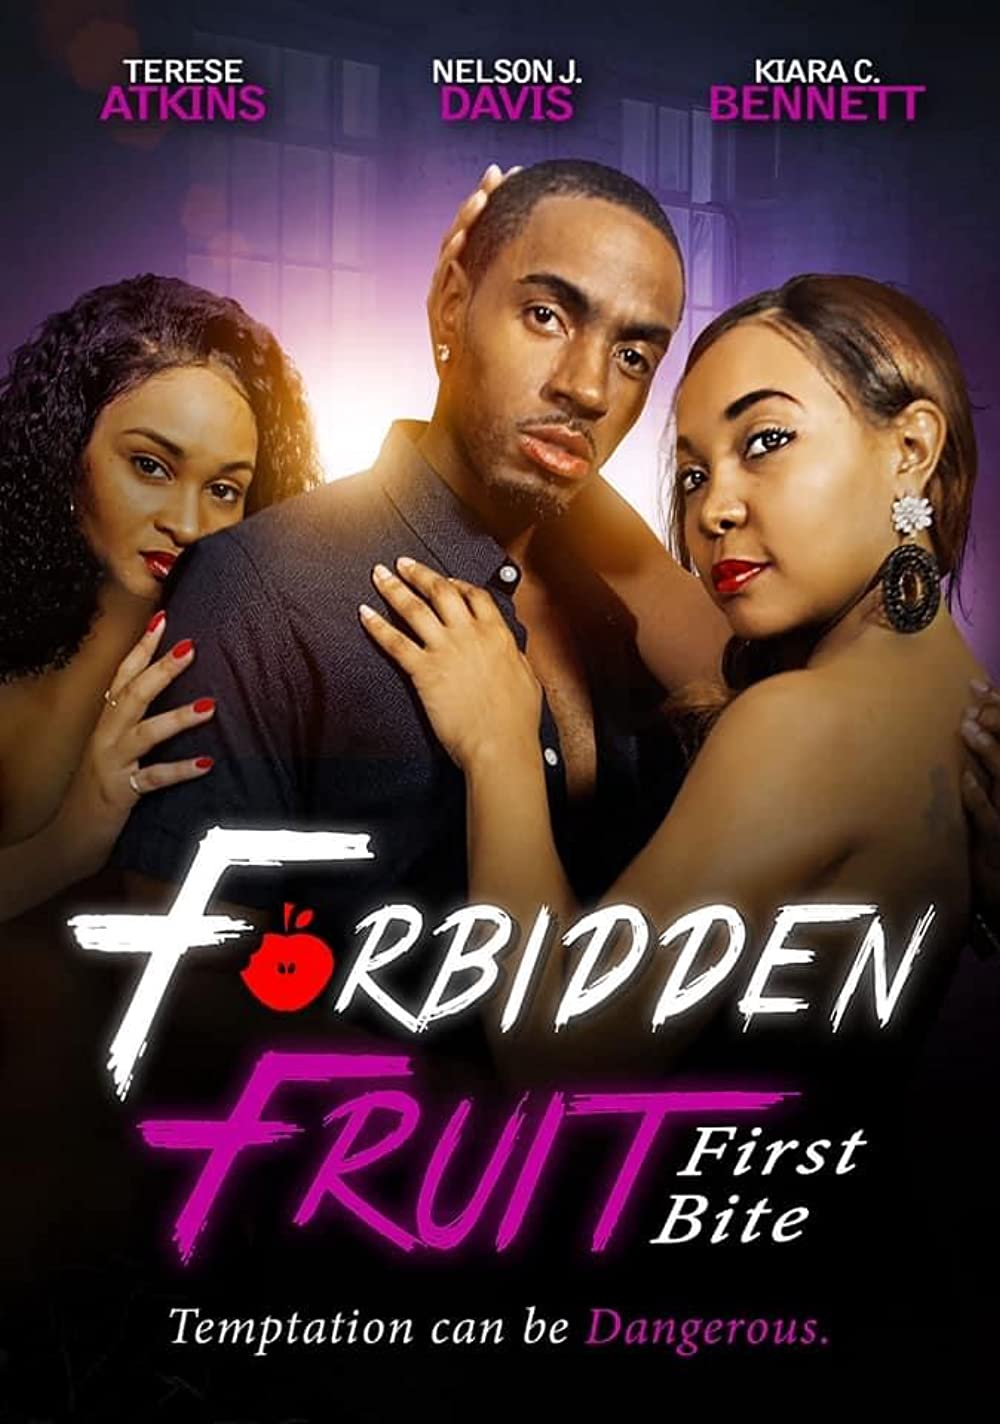 Forbidden Fruit First Bite 2021 English 290MB HDRip Download